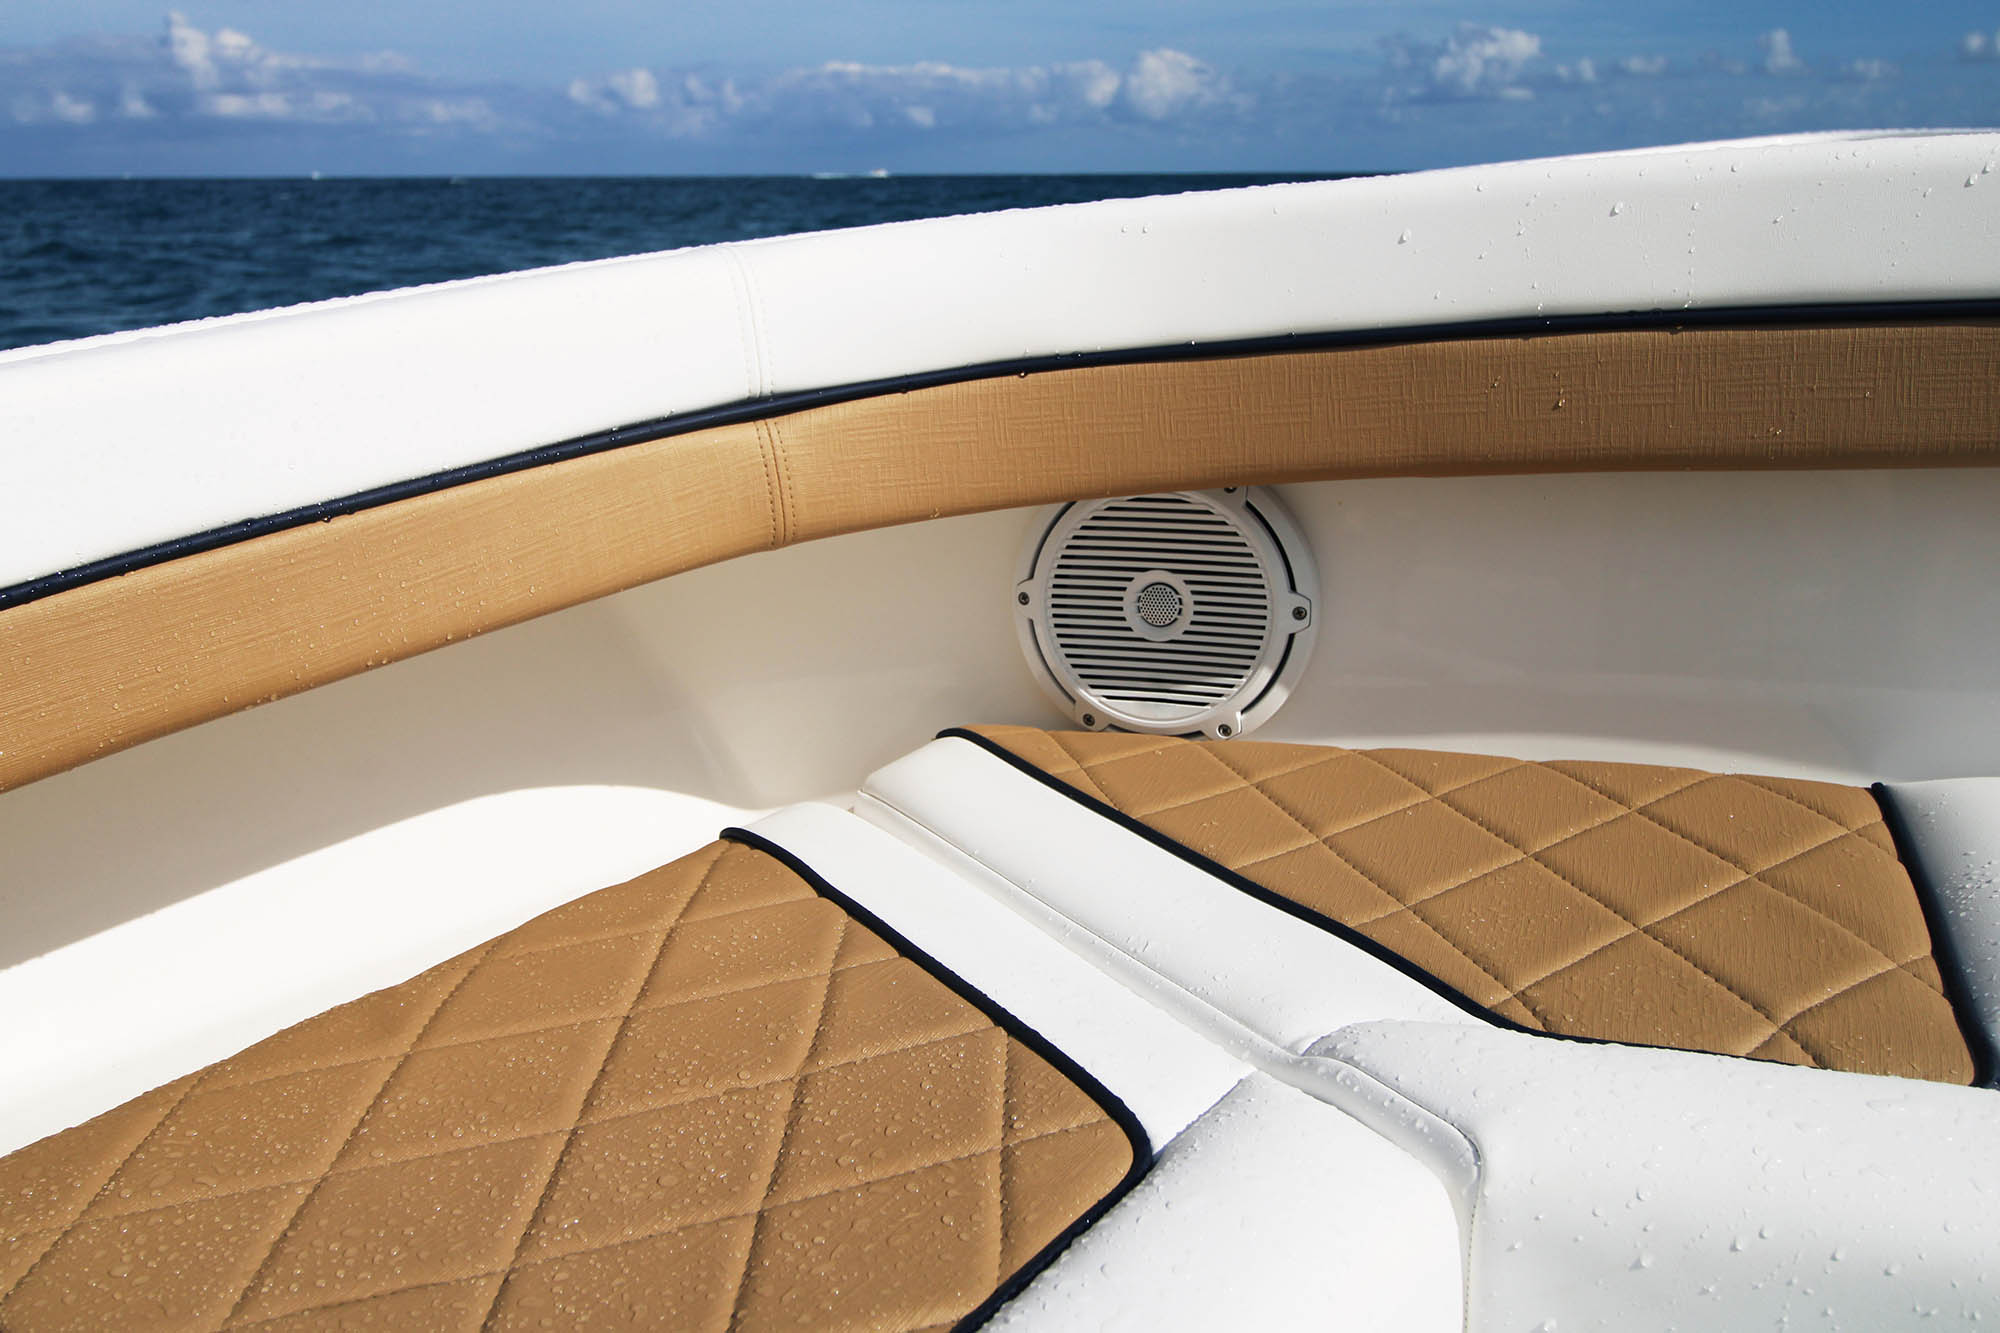 Boat seats upholstered in Sunbrella Horizon synthetic leather fabric.